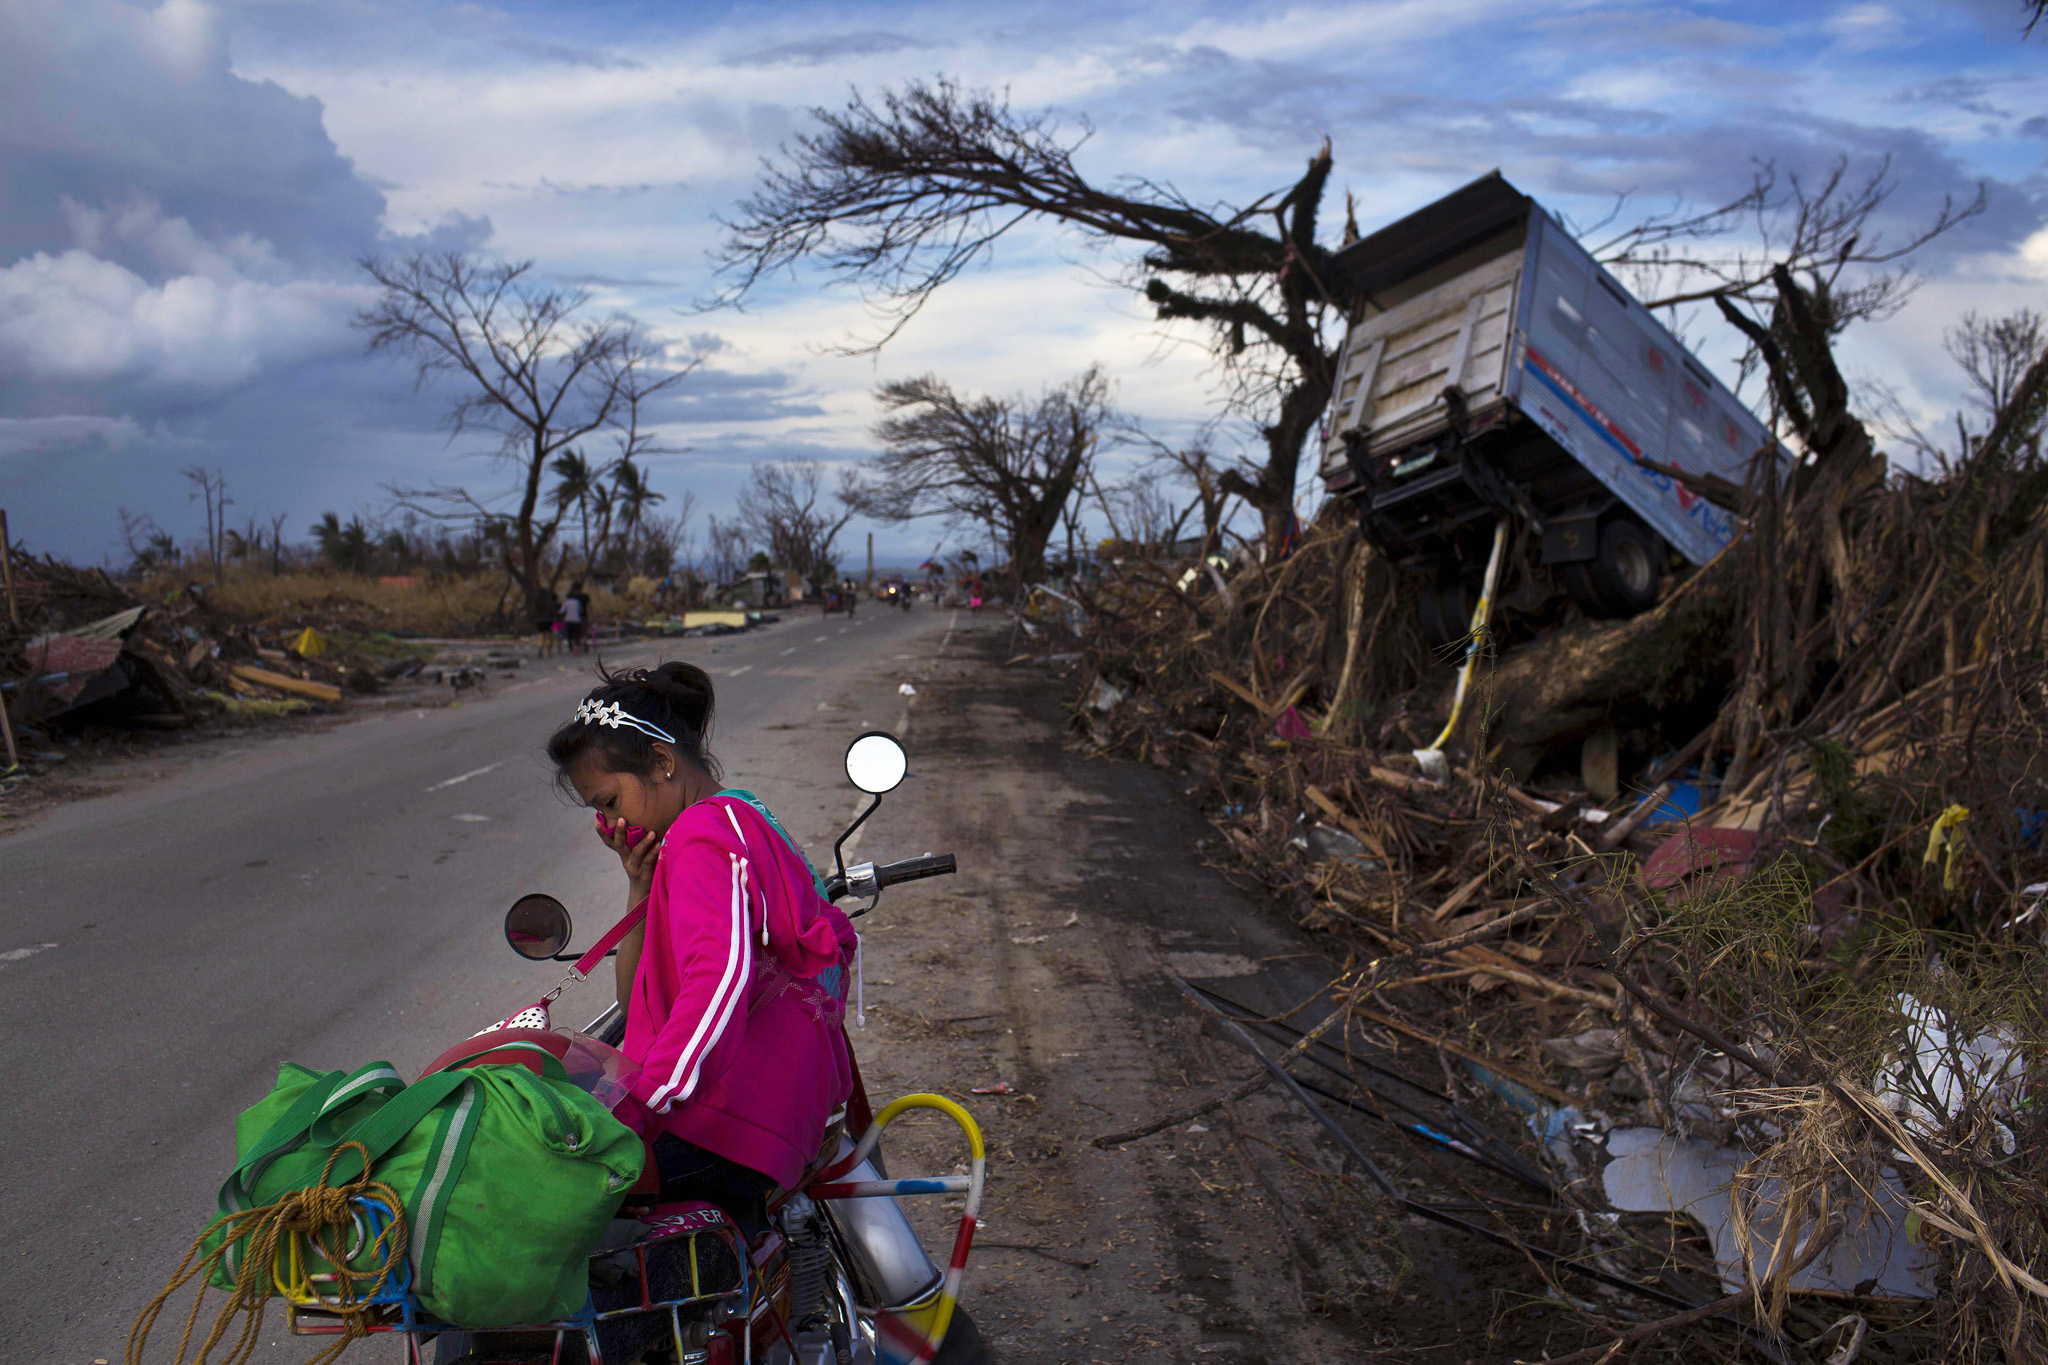 A woman rests on a roadside with her family's belongings near the Typhoon Haiyan ravaged town of Tacloban, central Philippines on Wednesday, Nov. 13, 2013. Typhoon Haiyan, one of the most powerful storms on record, hit the country's eastern seaboard on Friday, destroying tens of thousands of buildings and displacing hundreds of thousands of people.